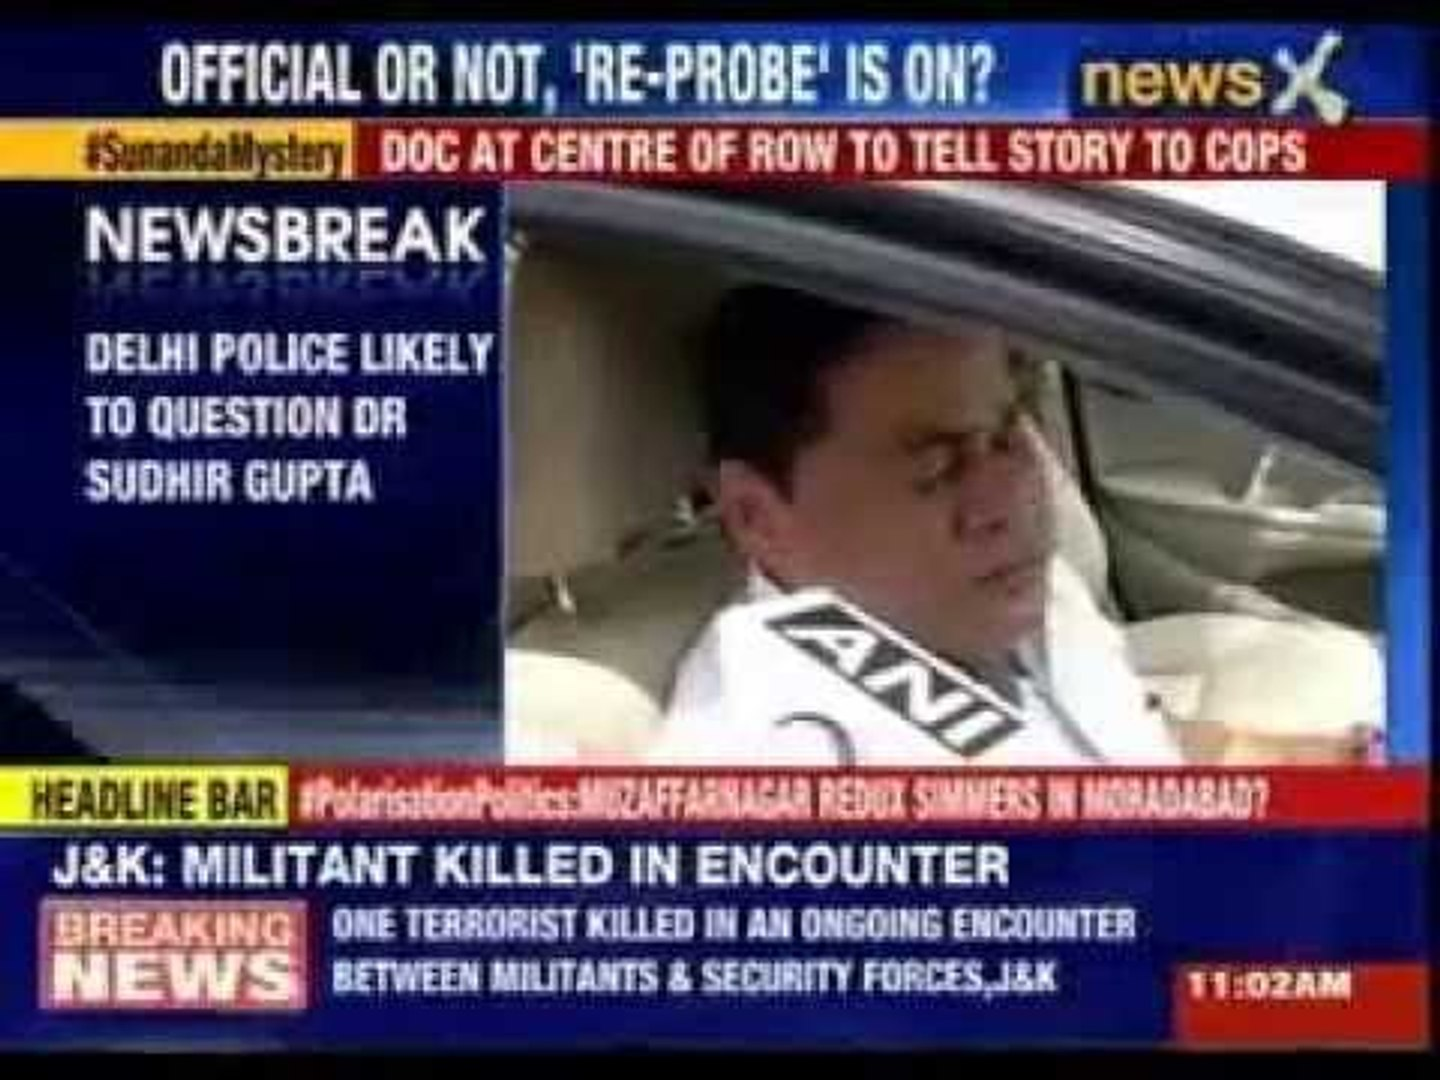 Sunanda Pushkar Case Delhi Police Likely To Question Dr Sudhir Gupta Video Dailymotion